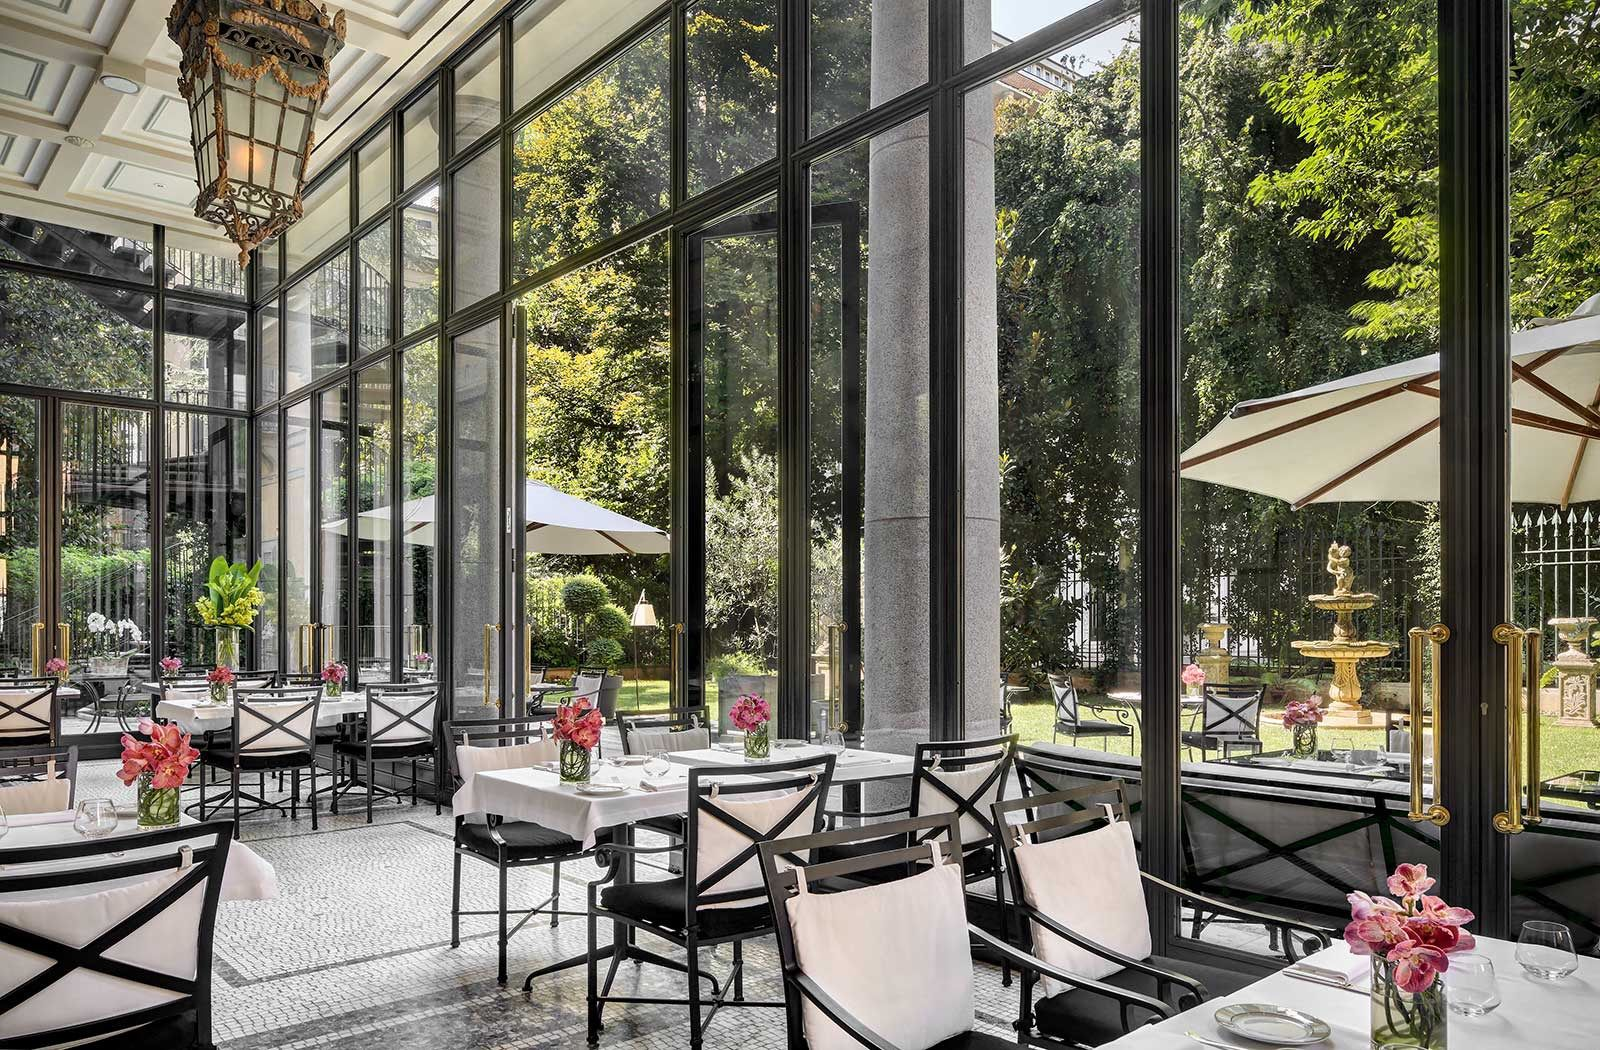 Luxury Restaurant Milan Best Cafe In